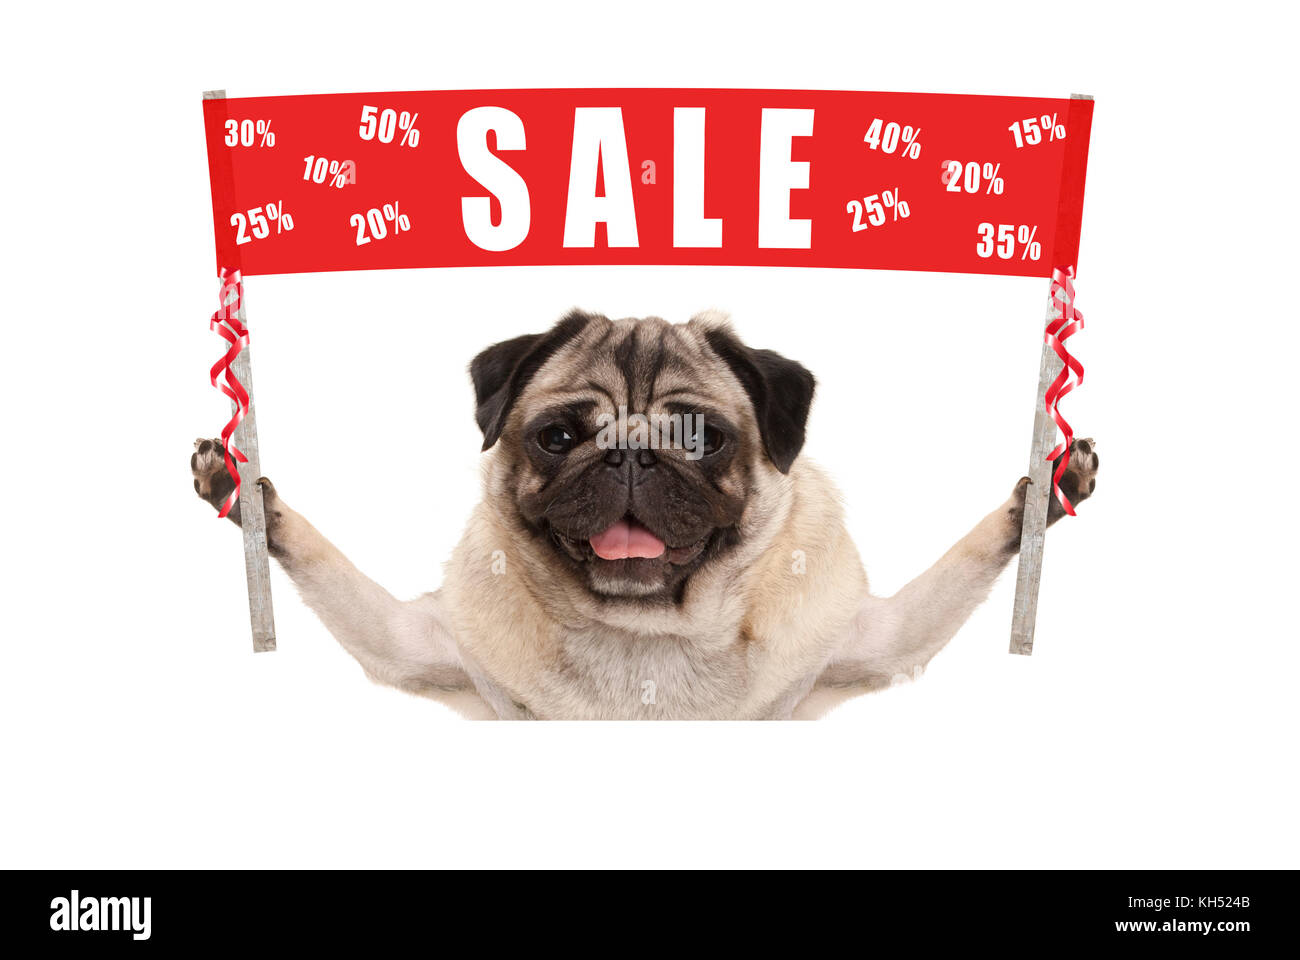 happy cute pug puppy dog holding up red promotional  banner sign with text sale % off, isolated on white background - Stock Image